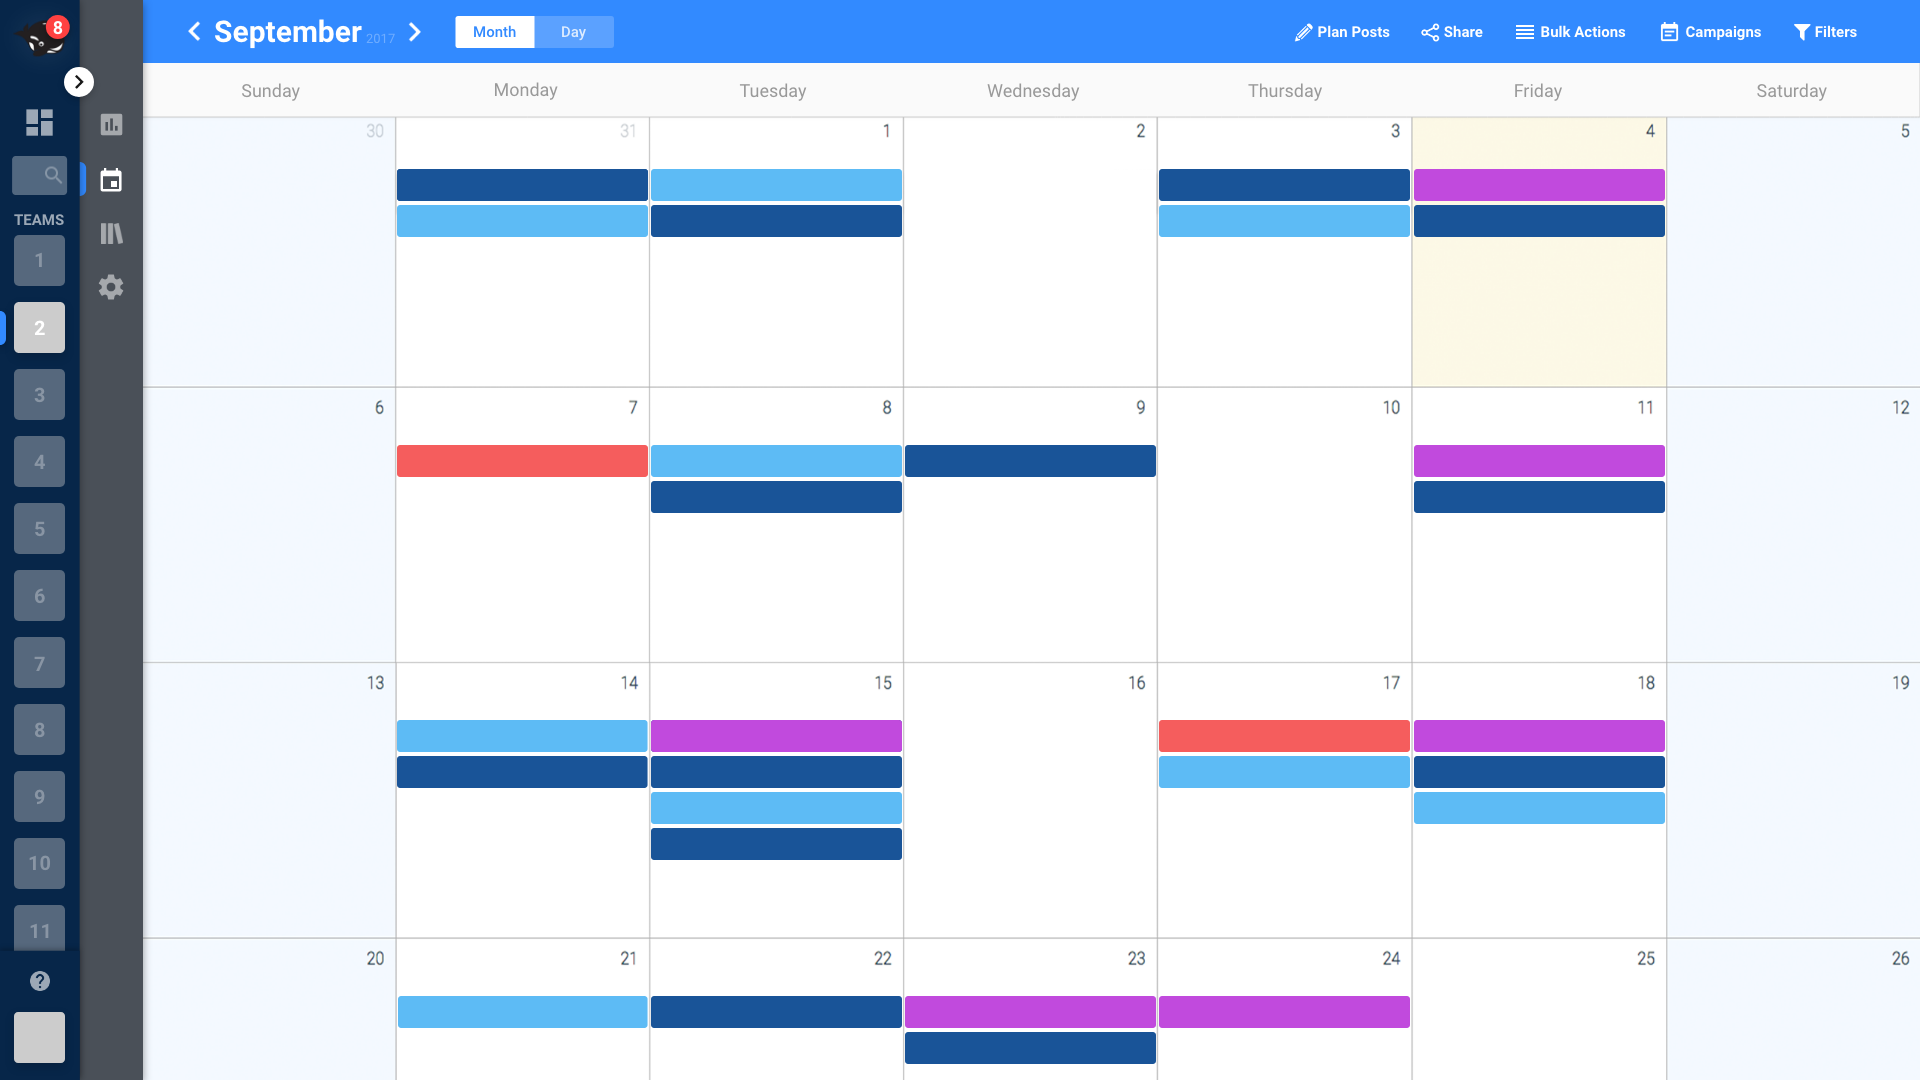 HeyOrca Demo - Social Media Calender